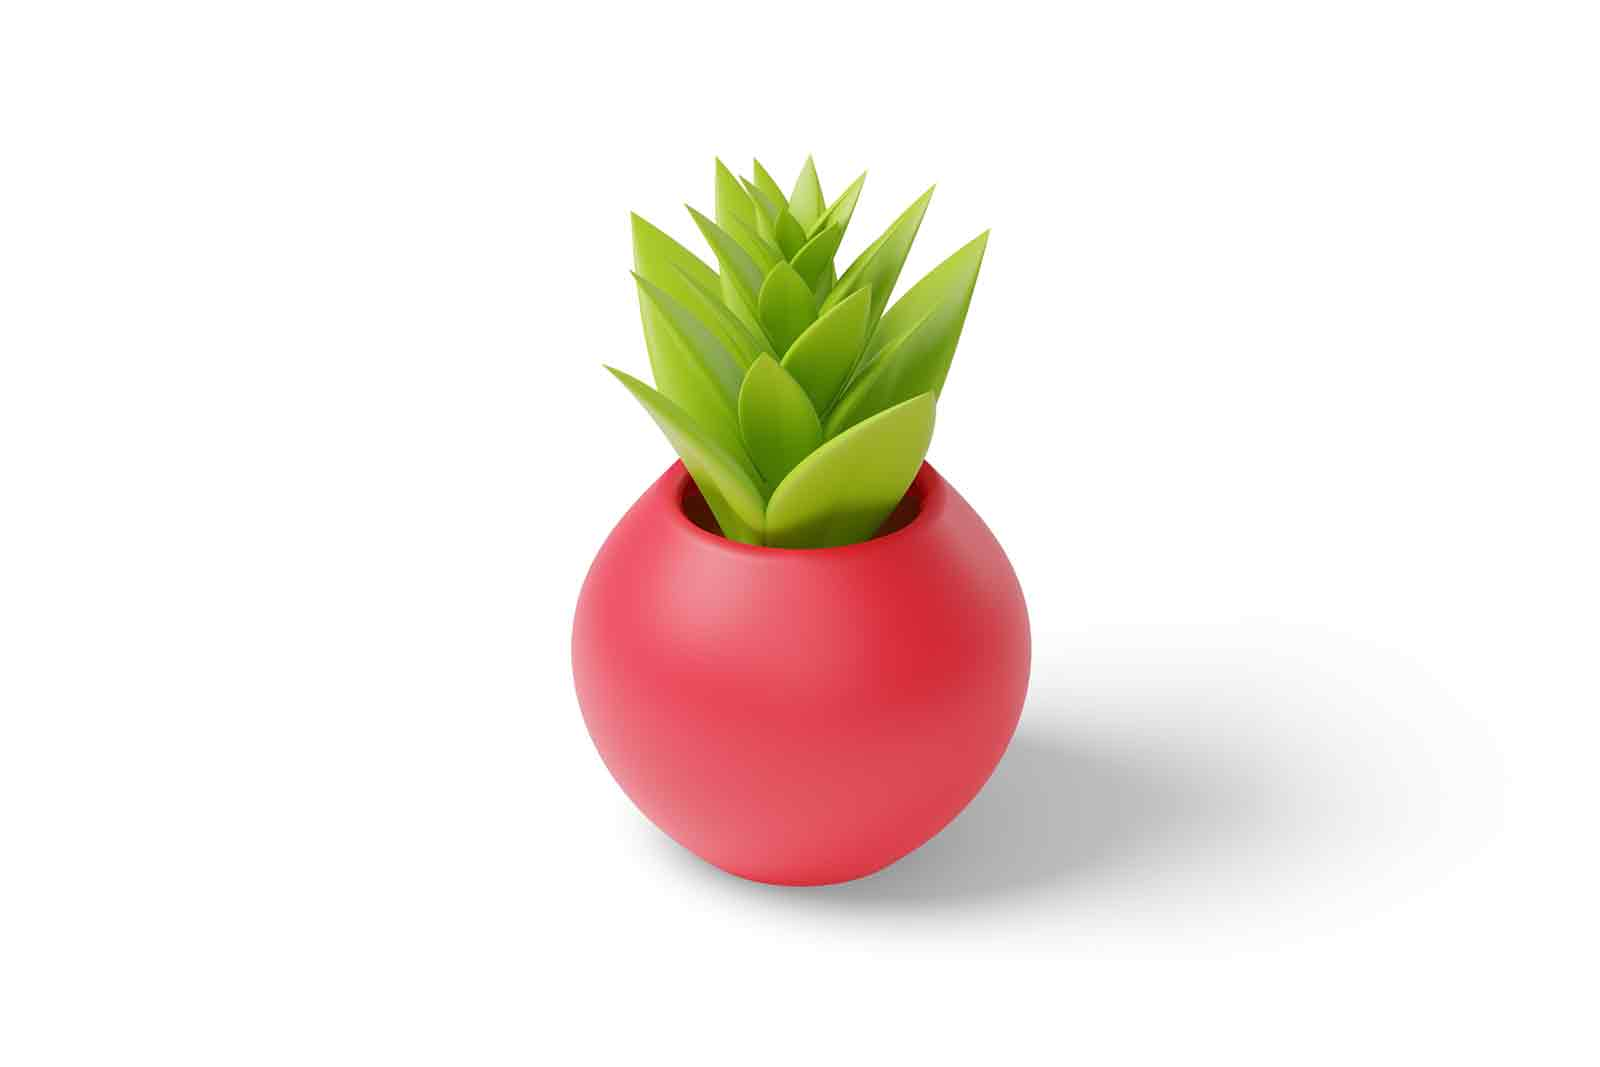 Red flowerpot for decorating the interiors of apartments 3d illustration. Isometric green decorative houseplant in pot. Element for interior design